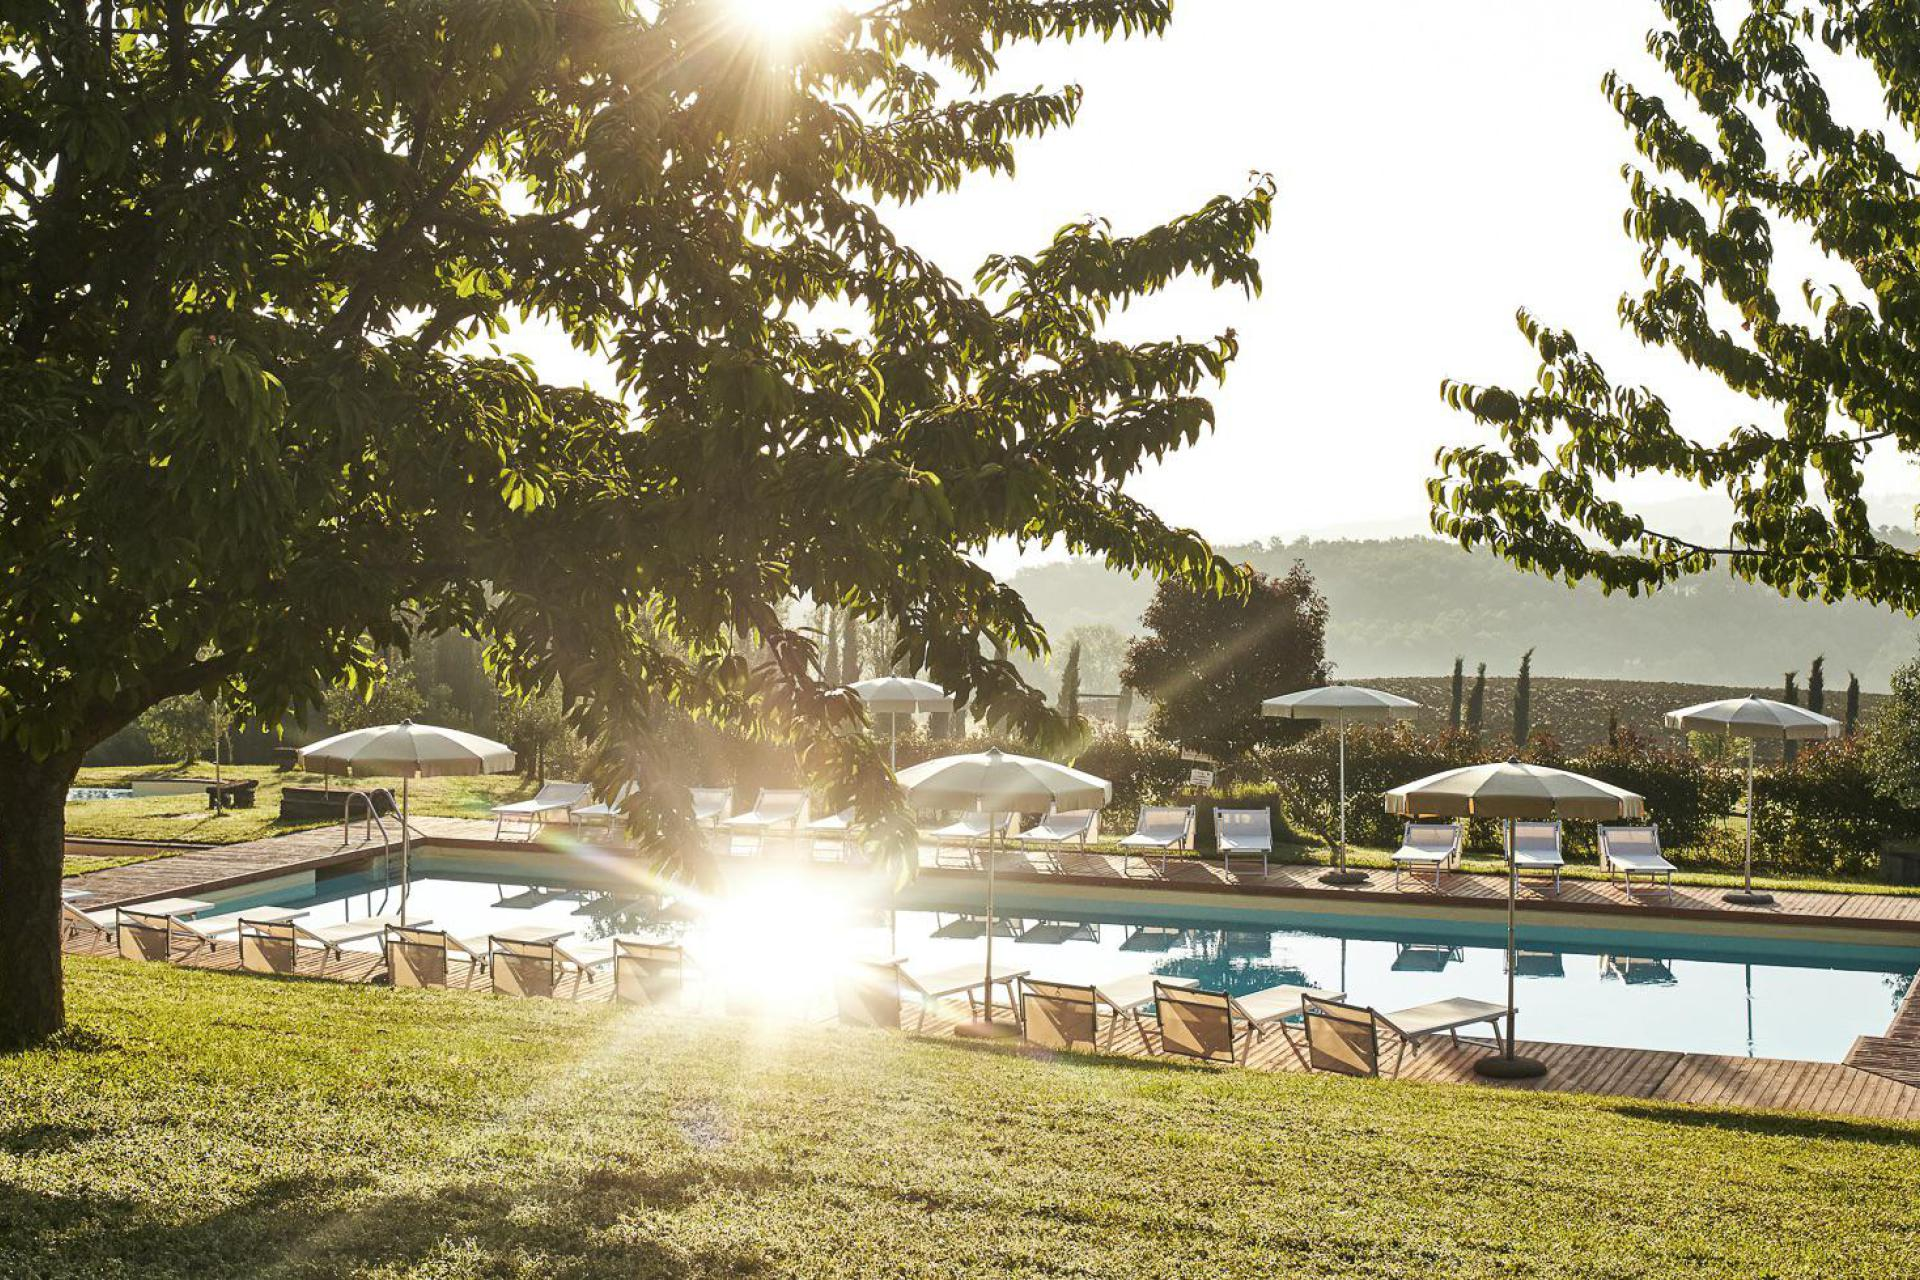 Agriturismo Tuscany Family-friendly agriturismo centrally located in Tuscany